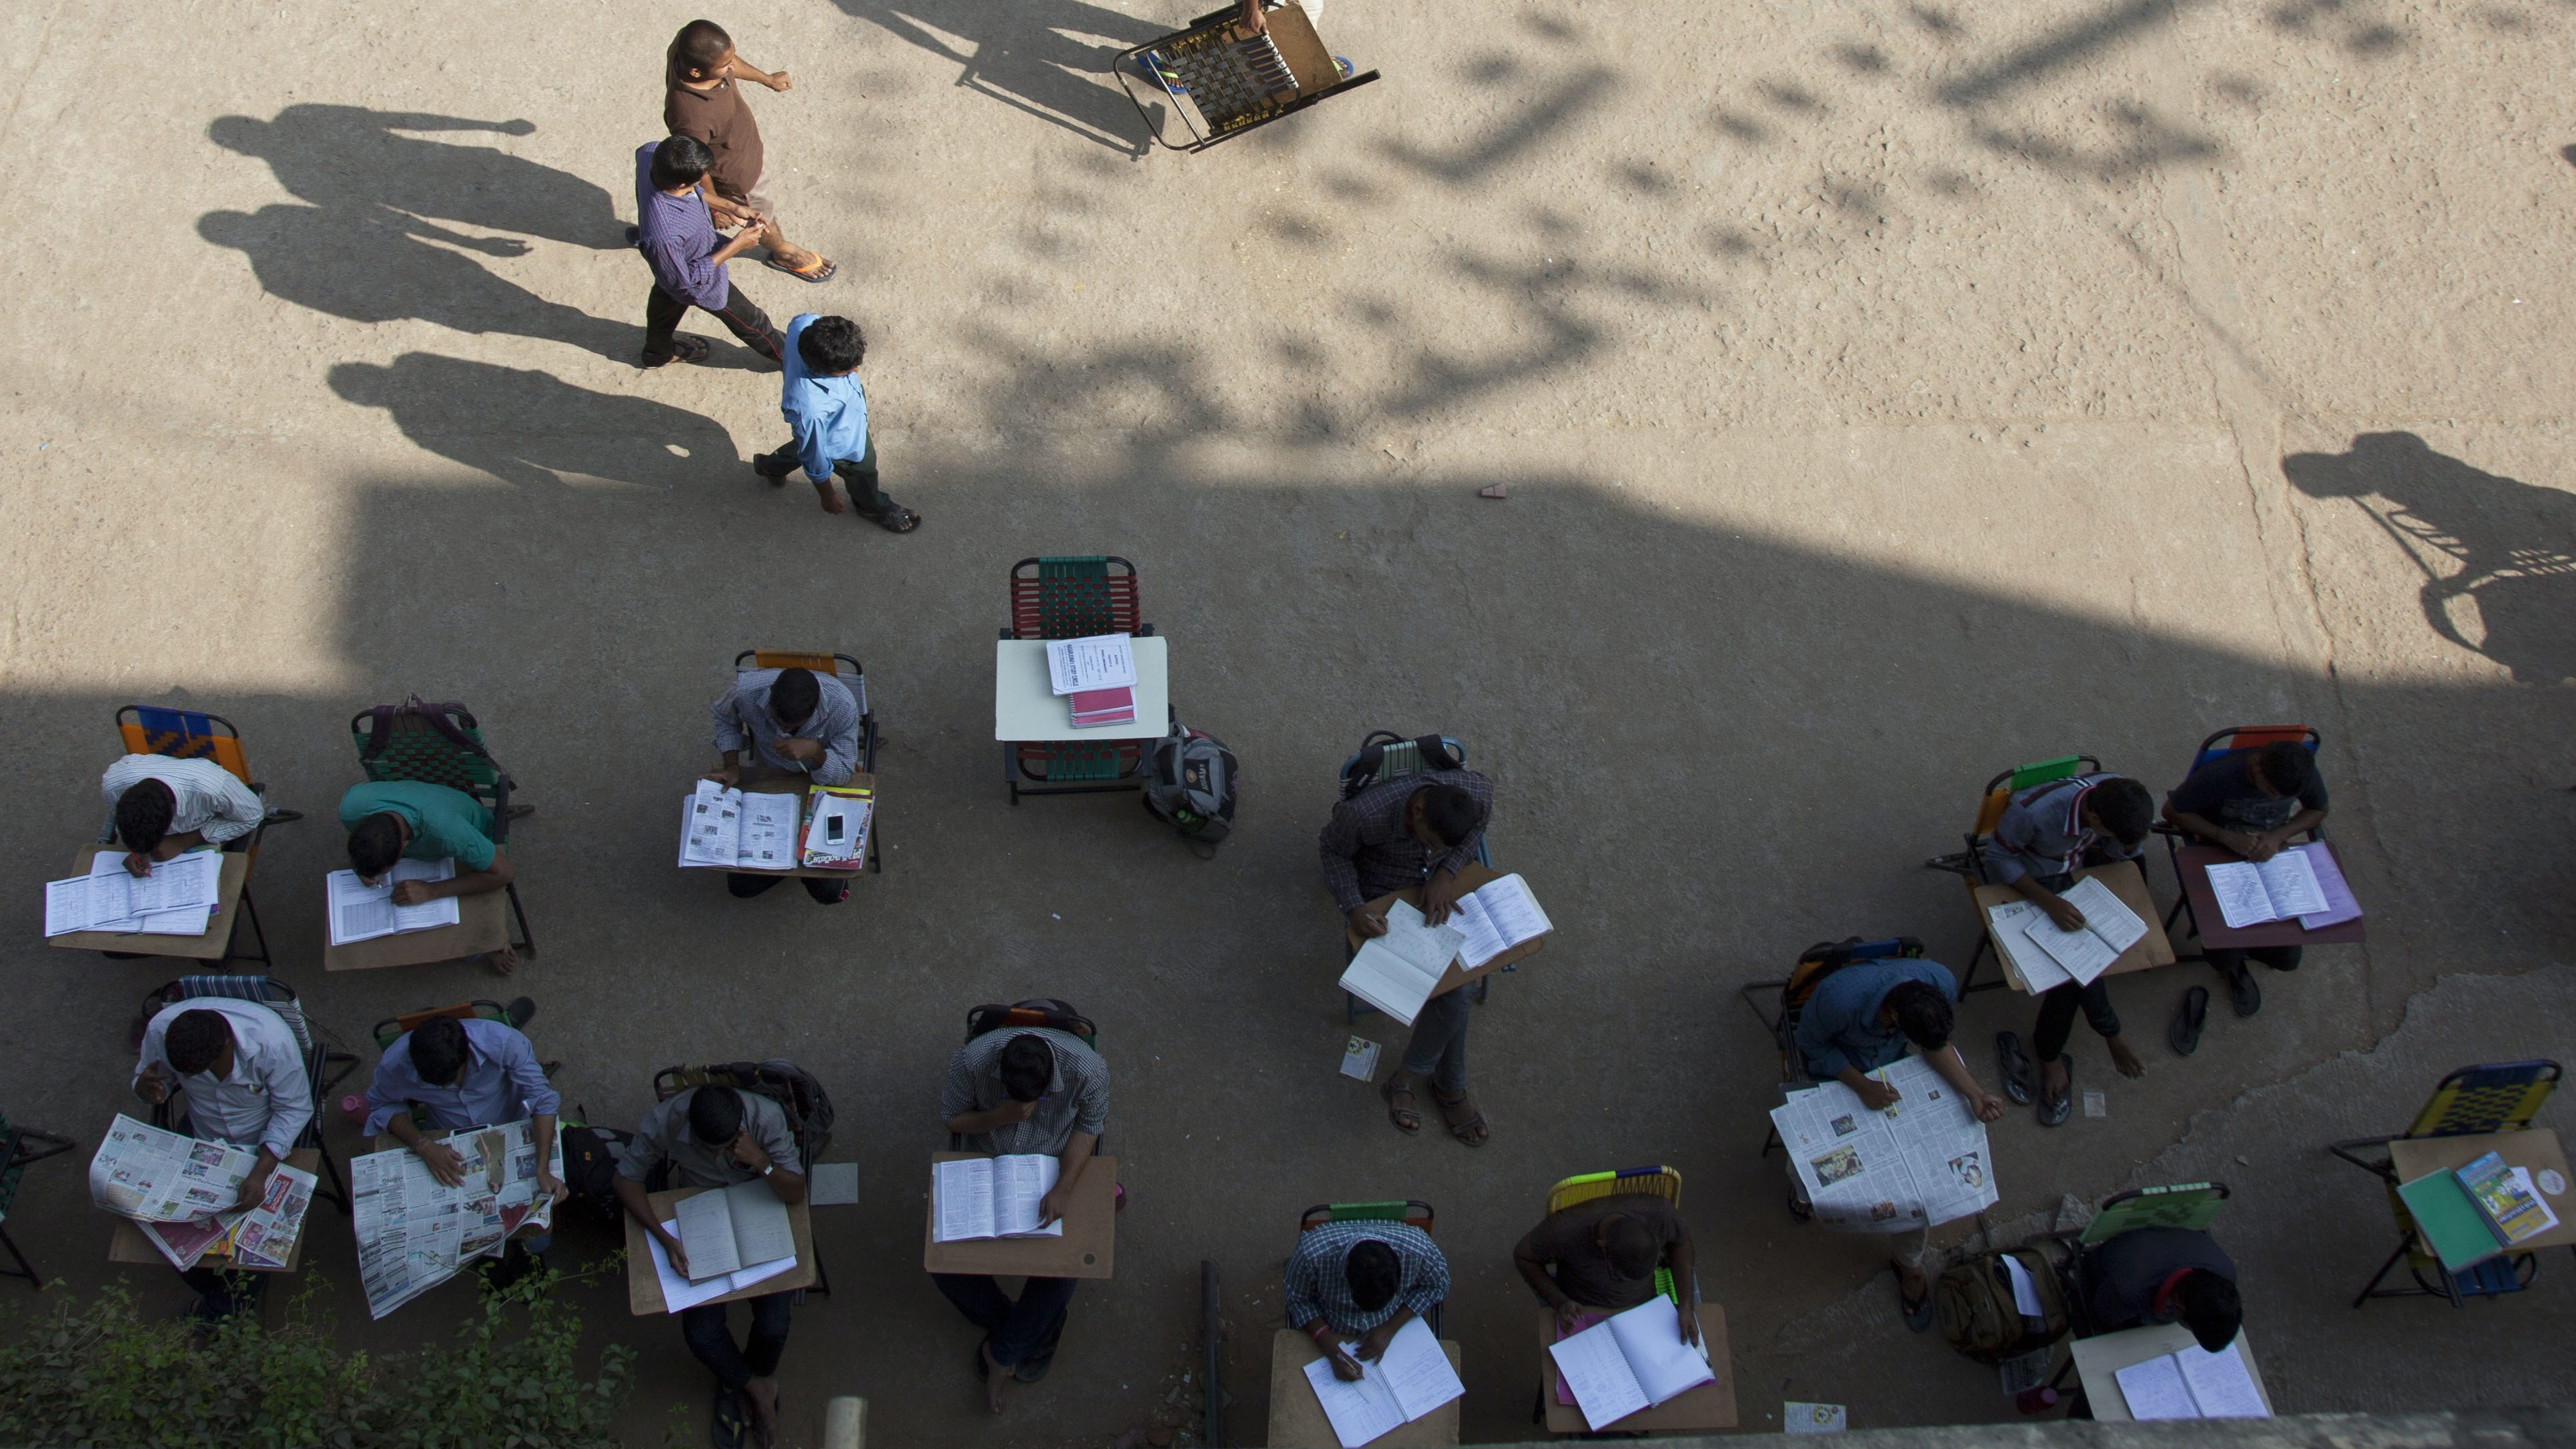 In this Friday, Feb. 17, 2017 photo, a man arrives holding a chair to join other college students and job-seekers study in an open ground outside the City Central Library in Hyderabad, India. Hundreds of young college students and job-seekers, armed with their books and other study material sit and prepare for examinations till late at night in the vicinity of this library. Many of them bring their own chairs, which they chain to the outer metal grill of the building overnight. High levels of unemployment, even among the educated, creates immense pressure on young people to find work, and more so for a secure government job. Nowhere is the search for jobs more desperate than in India where around 13 million young people enter the job market every year. (AP Photo/Mahesh Kumar A.)